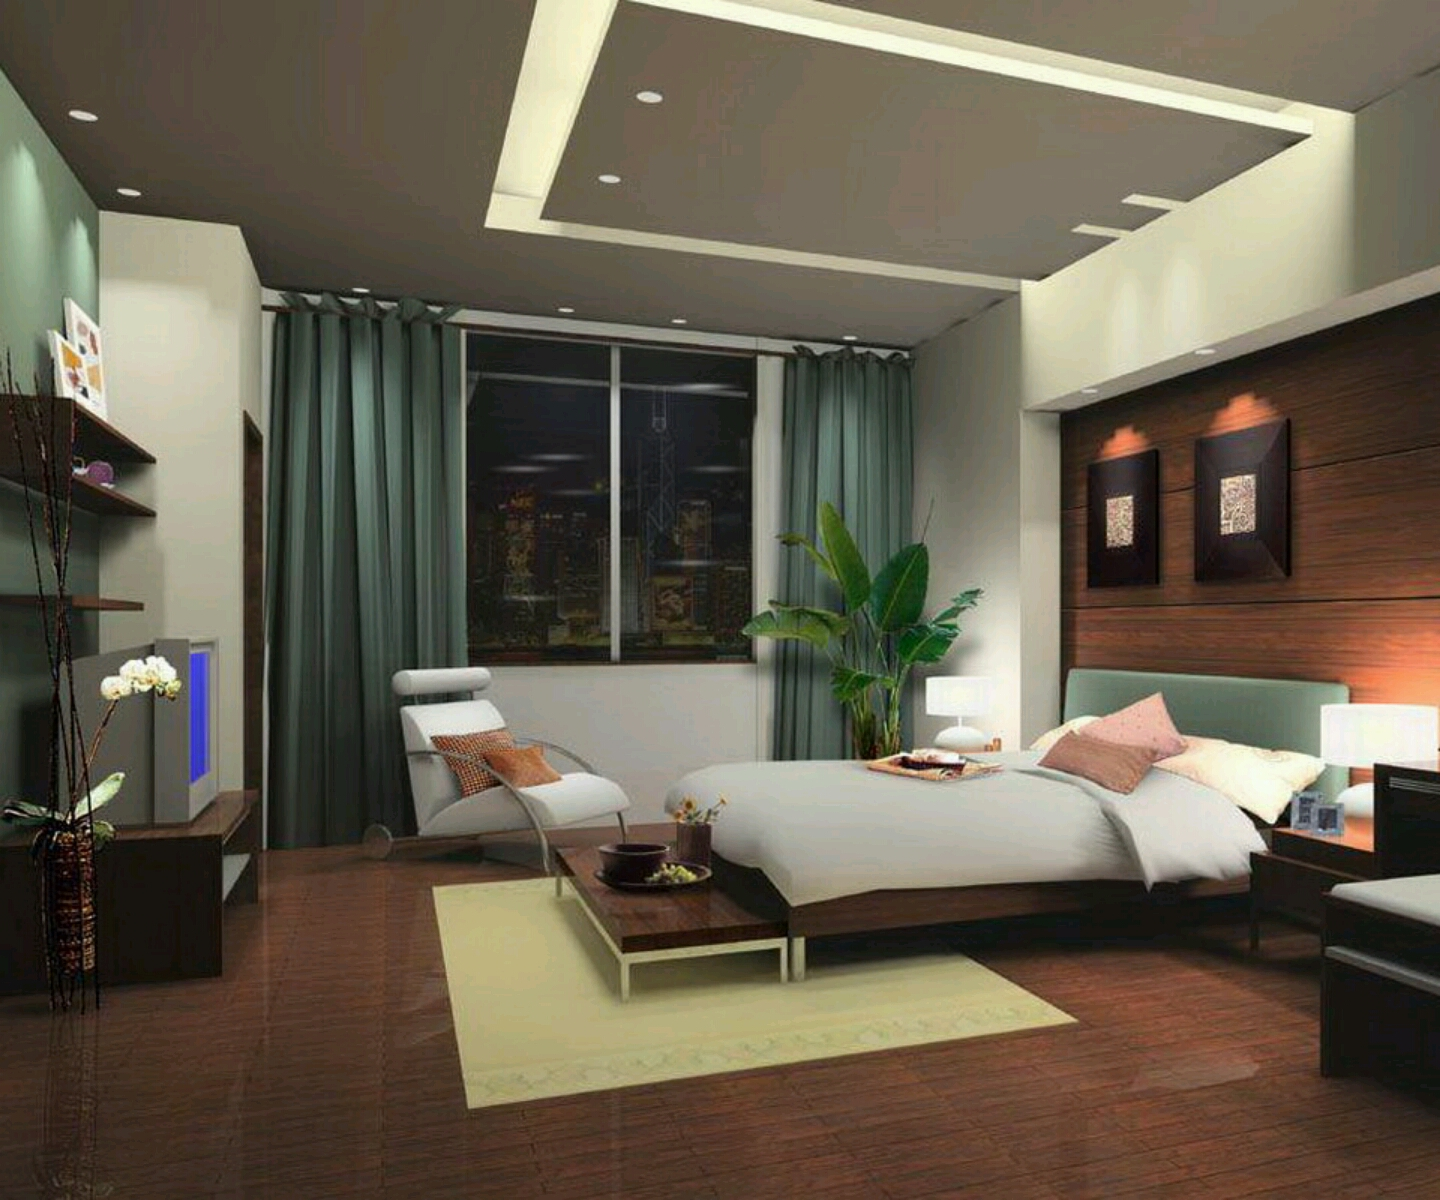 New home designs latest modern bedrooms designs best ideas for Latest interior of bedroom